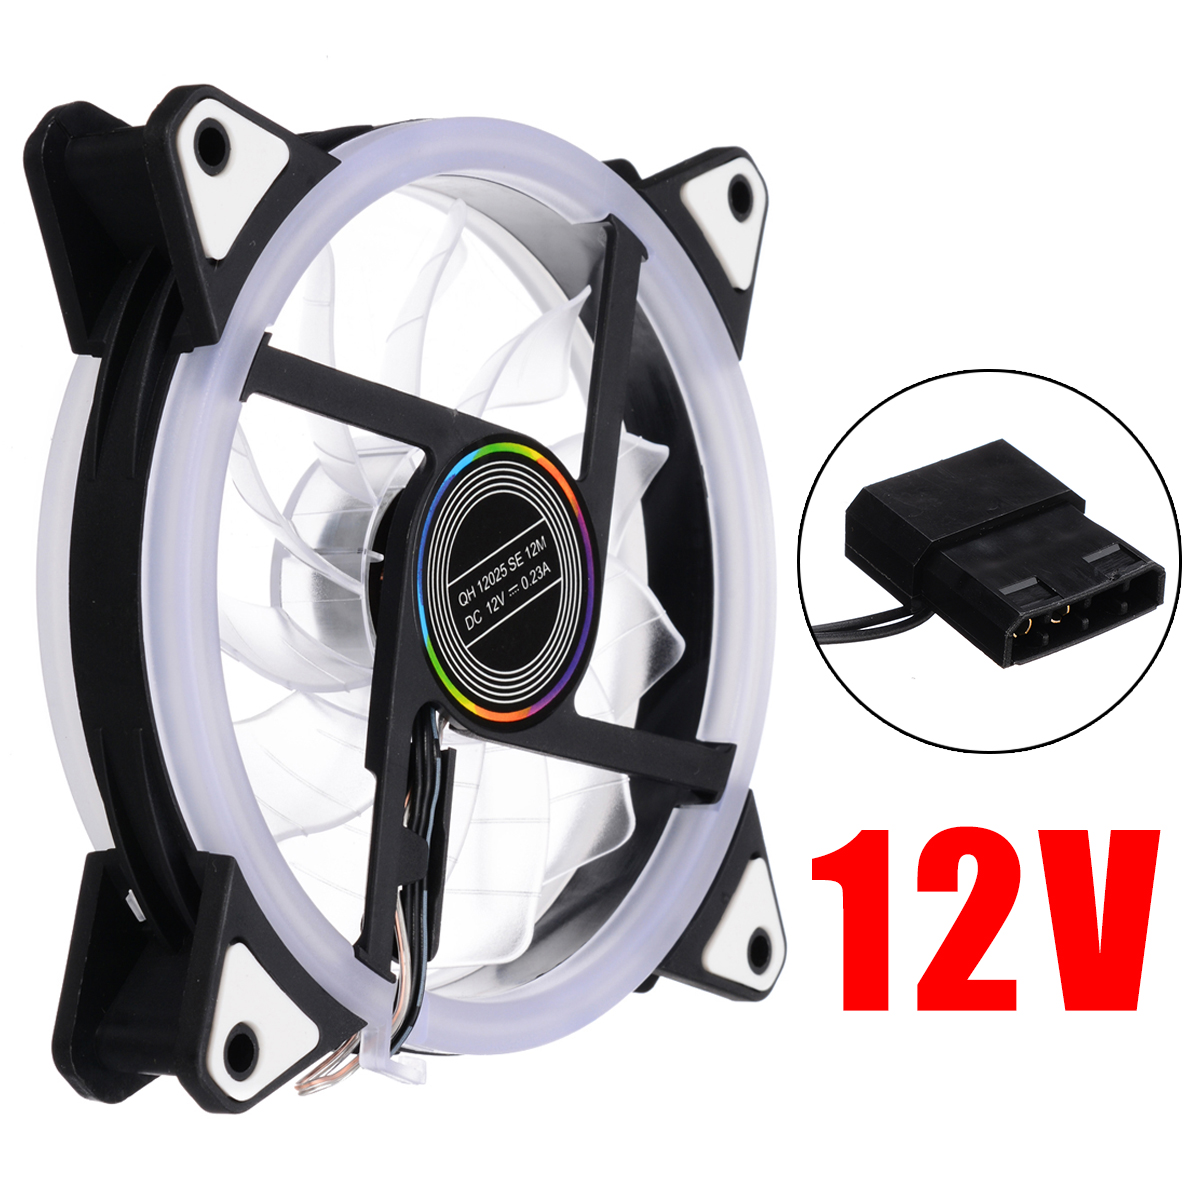 120mm 12V Quiet LED Cooling Fan RGB Adjust 4Pin to 3Pin PC Desktop Computer Case Cooling Cooler Fan for Computer CPU Cooler image